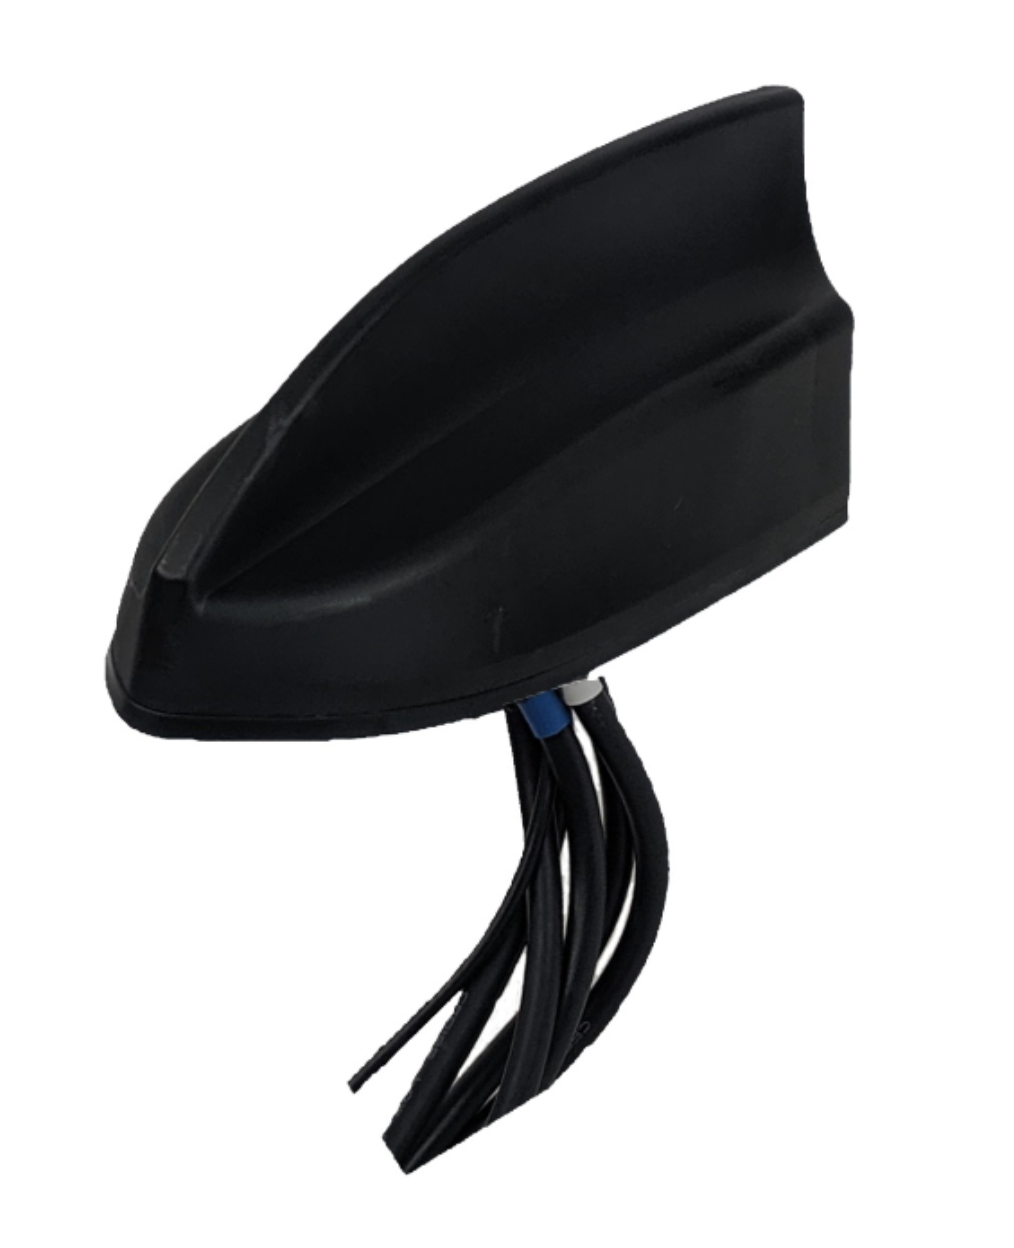 RMXD-G4-15-SS-B: Shark Fin Antenna with 1x GPS, 1x LTE and 2x SMA-Male Connectors